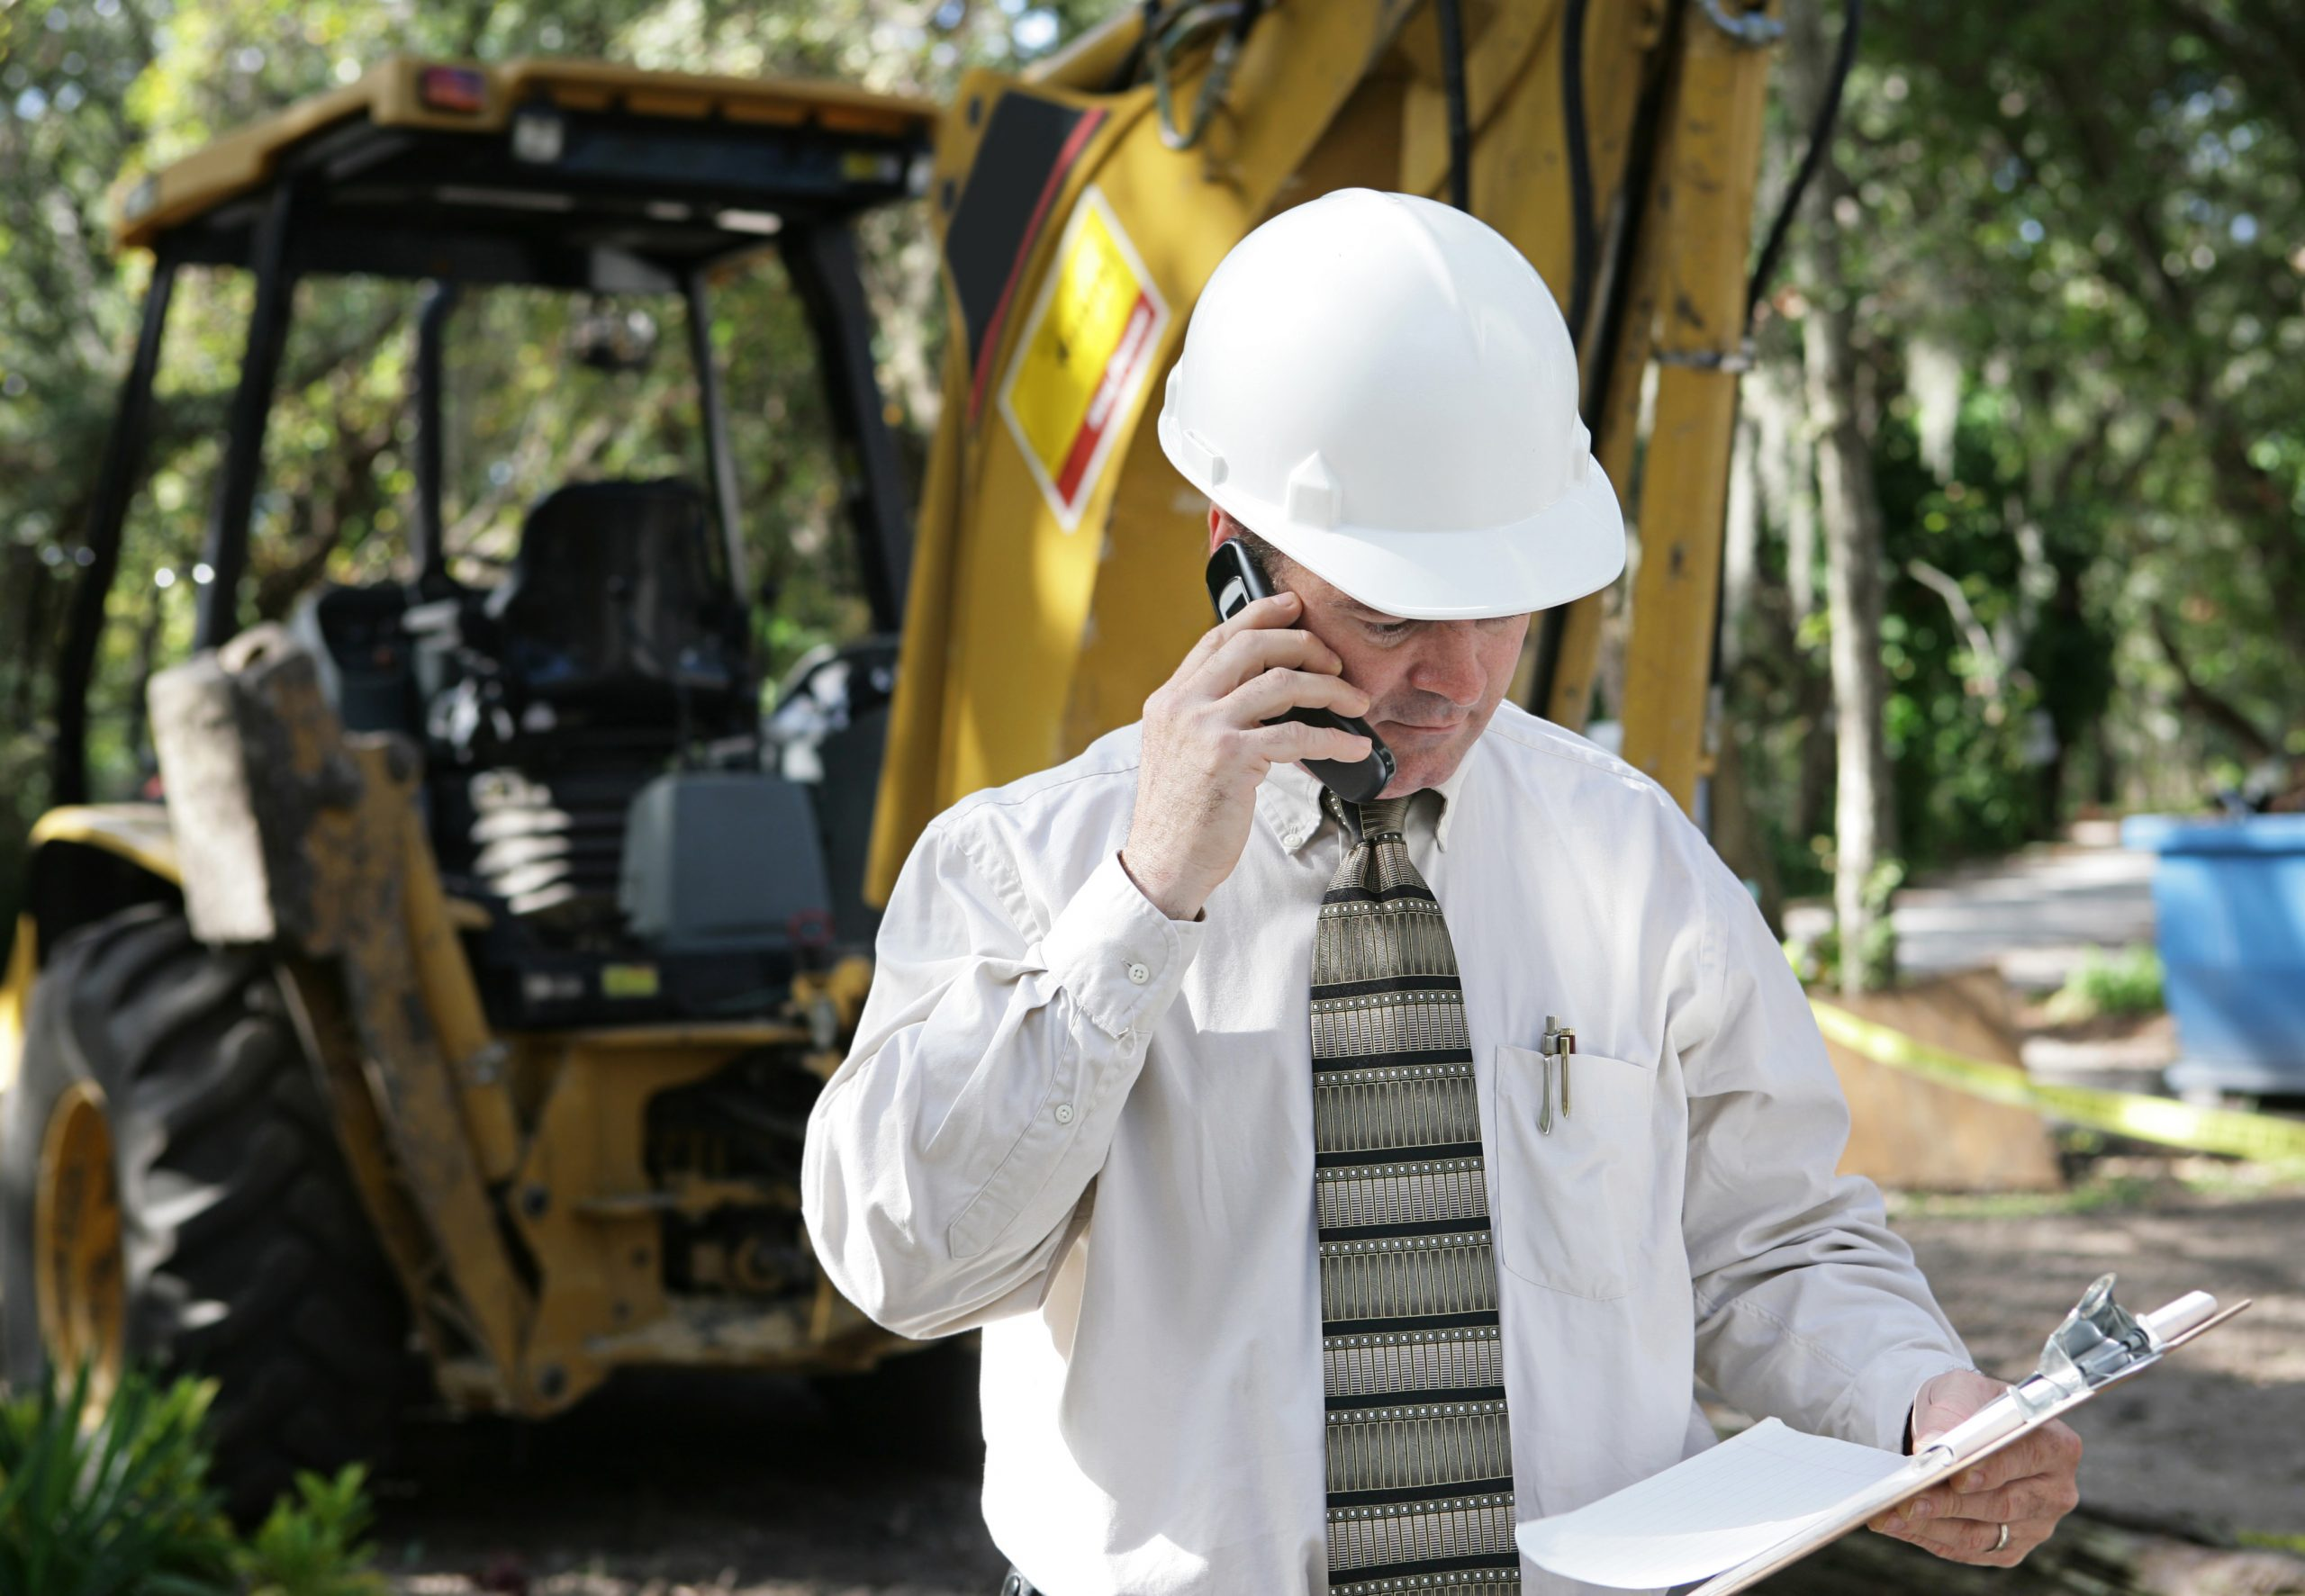 engineer discussing plans on a cell phone